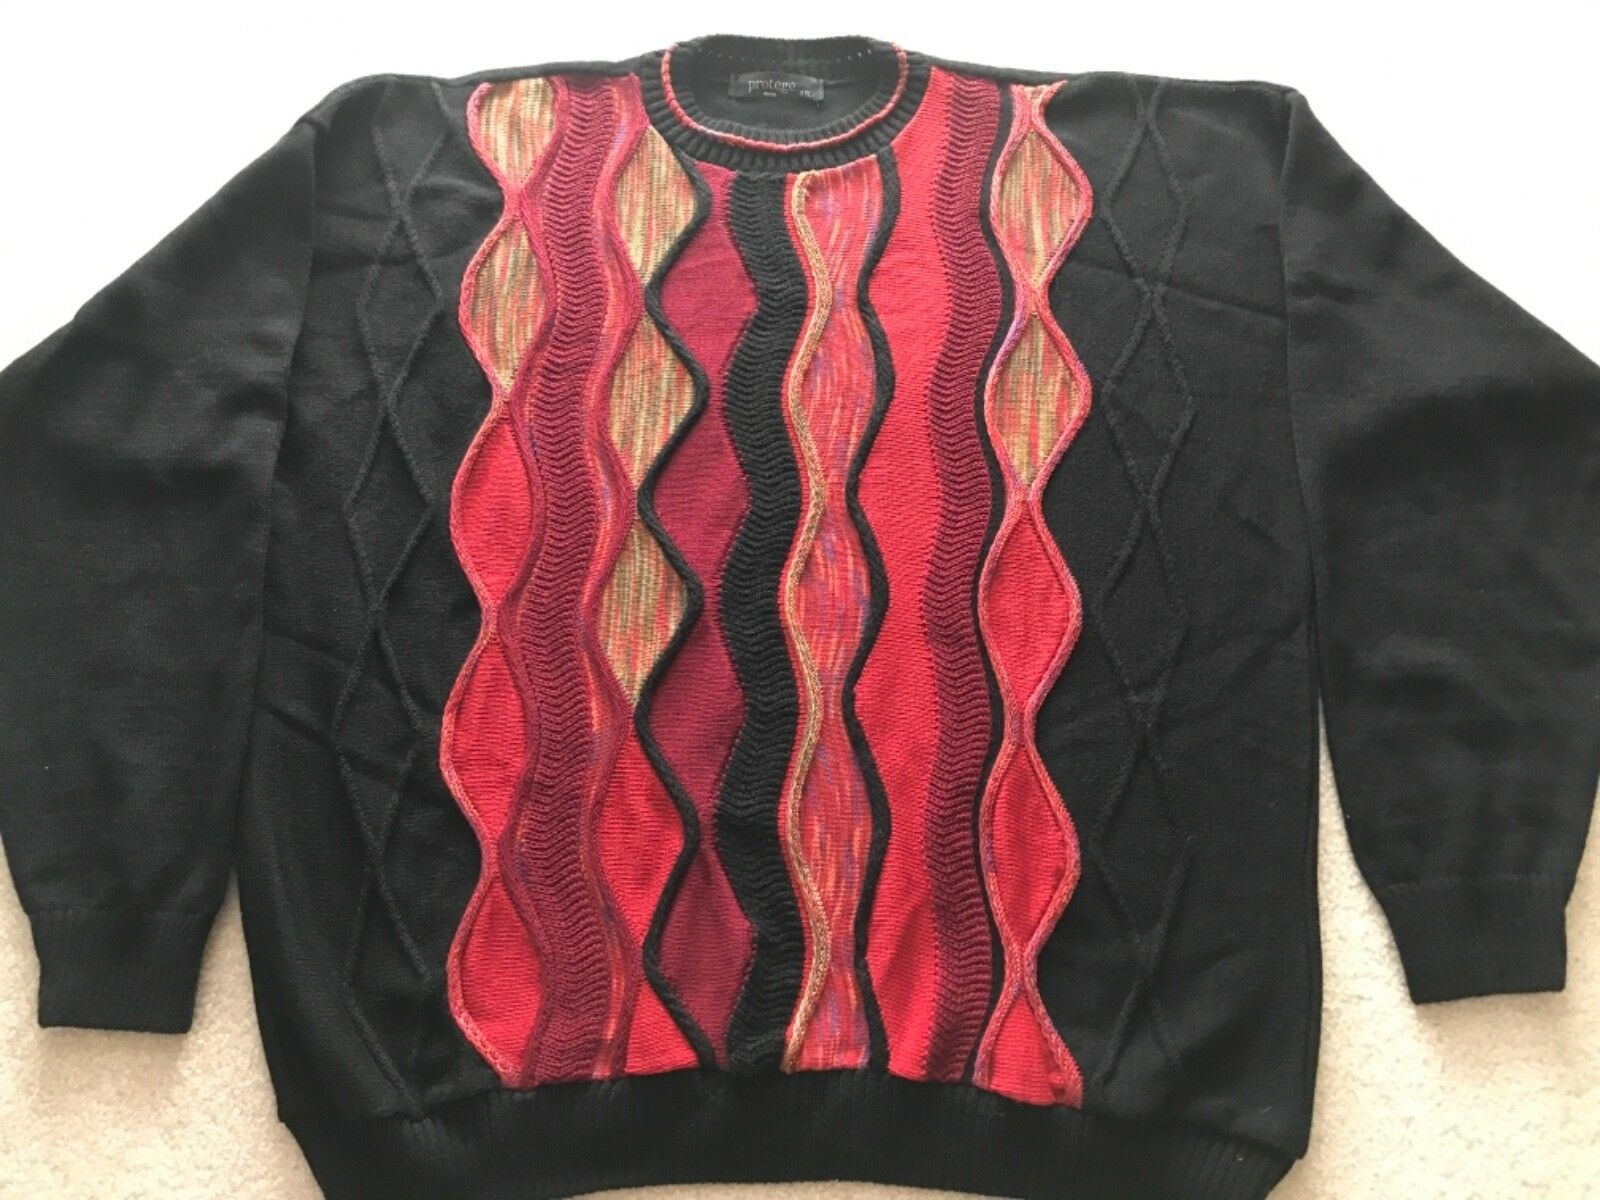 Protege Collection Coogi Style Multi Farbe Sweater Größe XXL Ugly Sweater 2X 3D